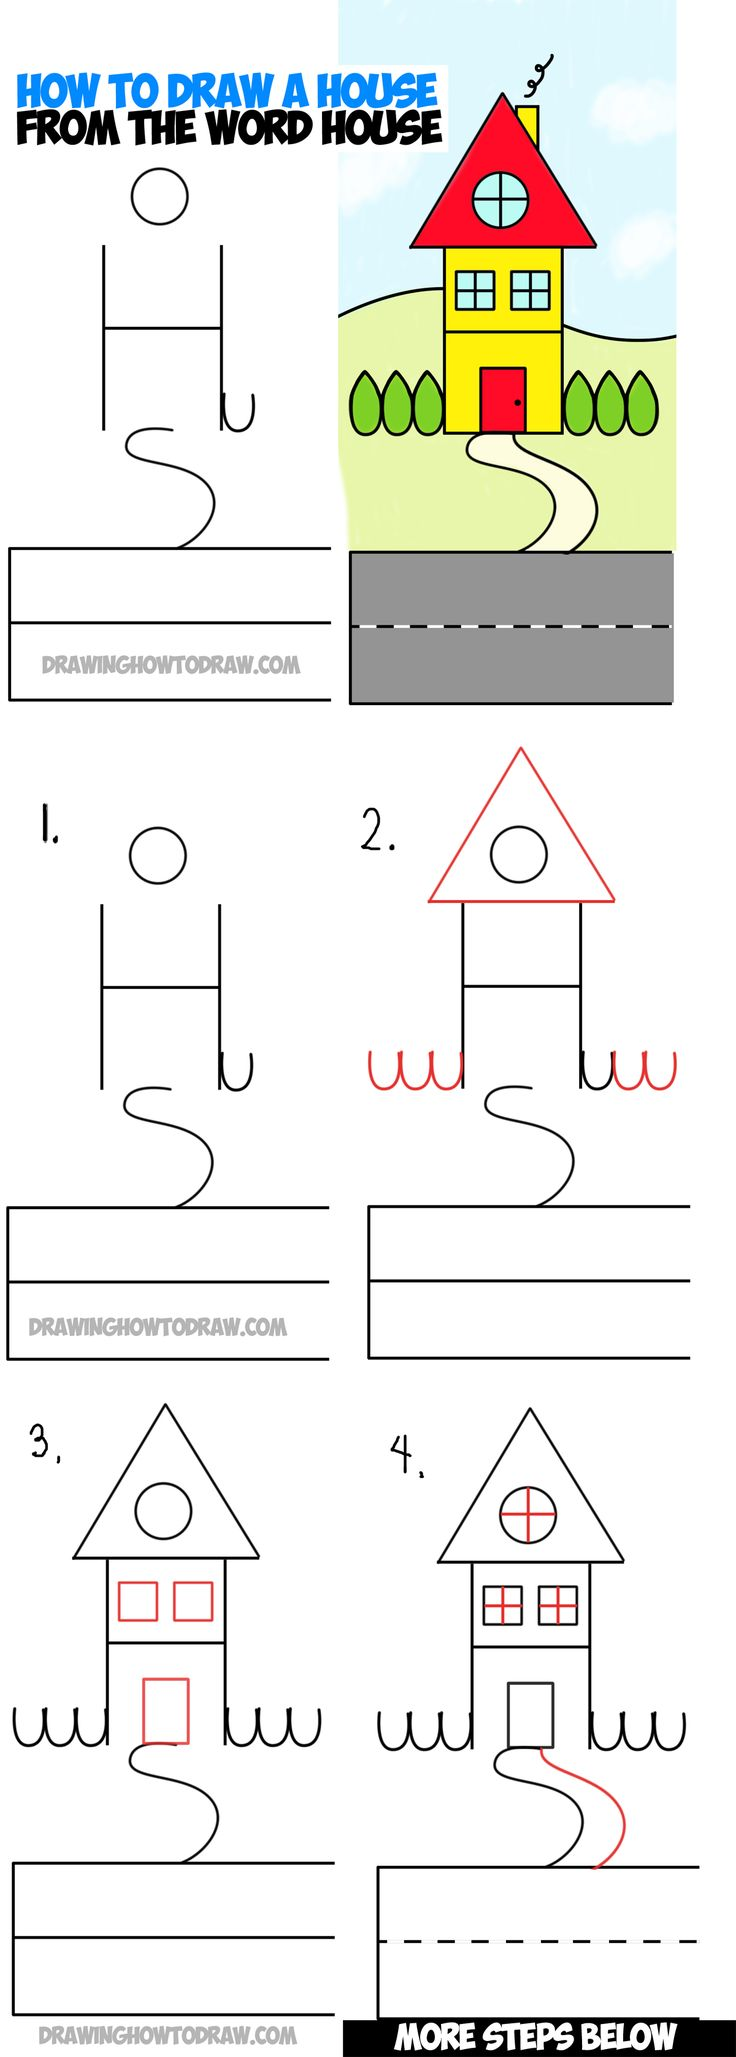 How to Draw a Cartoon House from the word HOUSE : a Simple Word Cartoon Step by step Drawing Tutorial for Kids